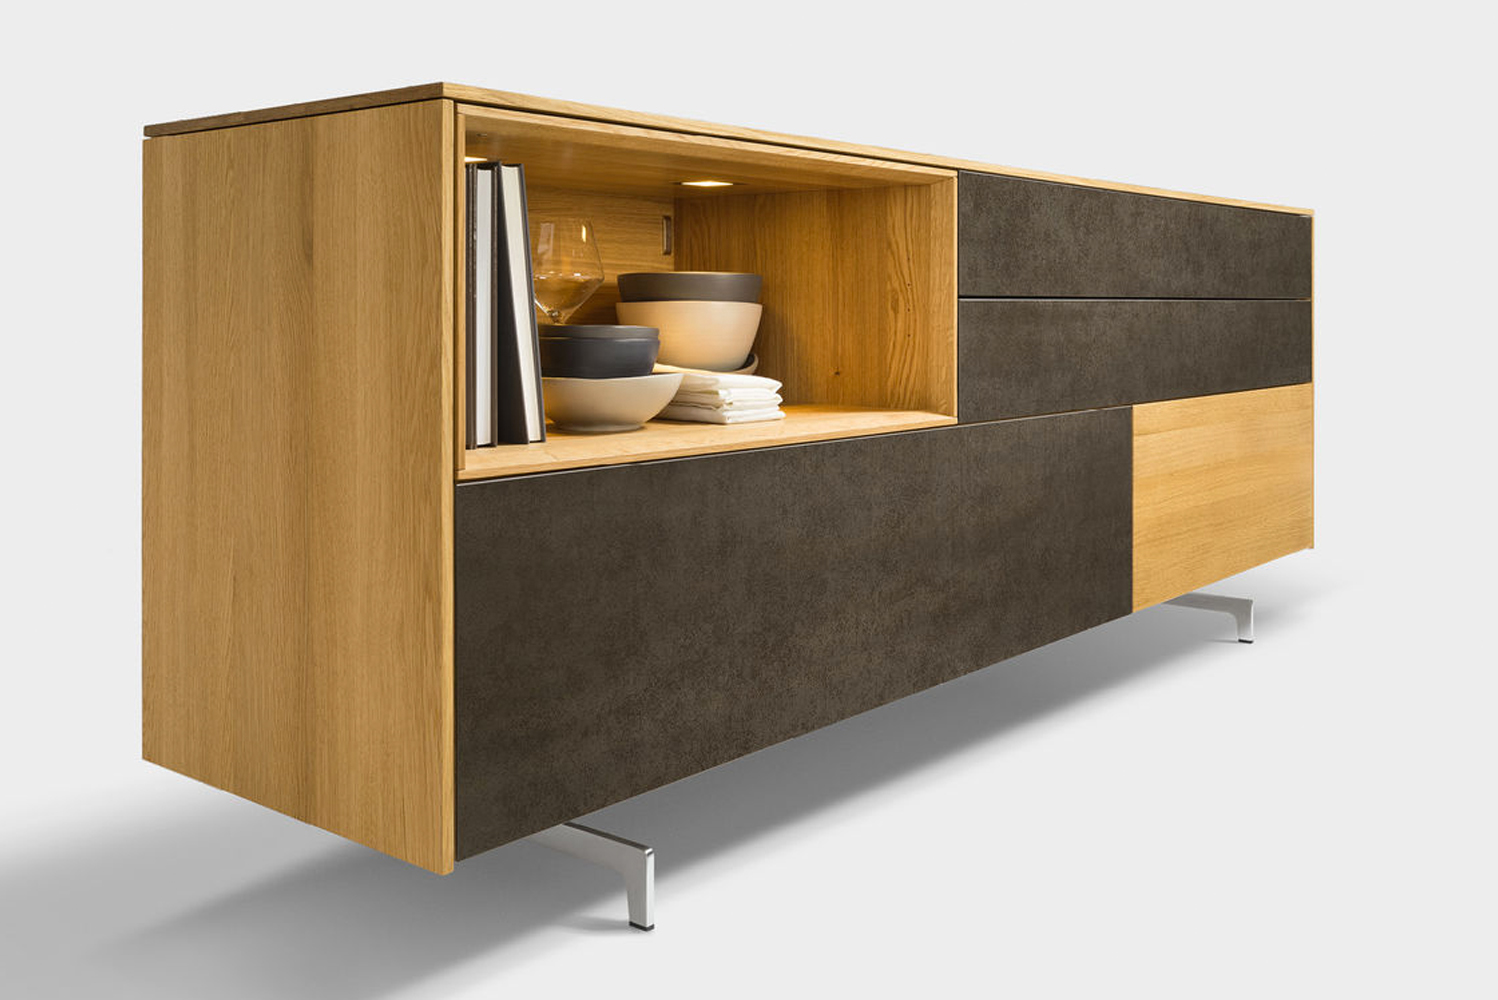 Austrian company Team 7 launched the Filigno occasional furniture, using such materials as solid wood and colored glass in an array of finishes and palette.